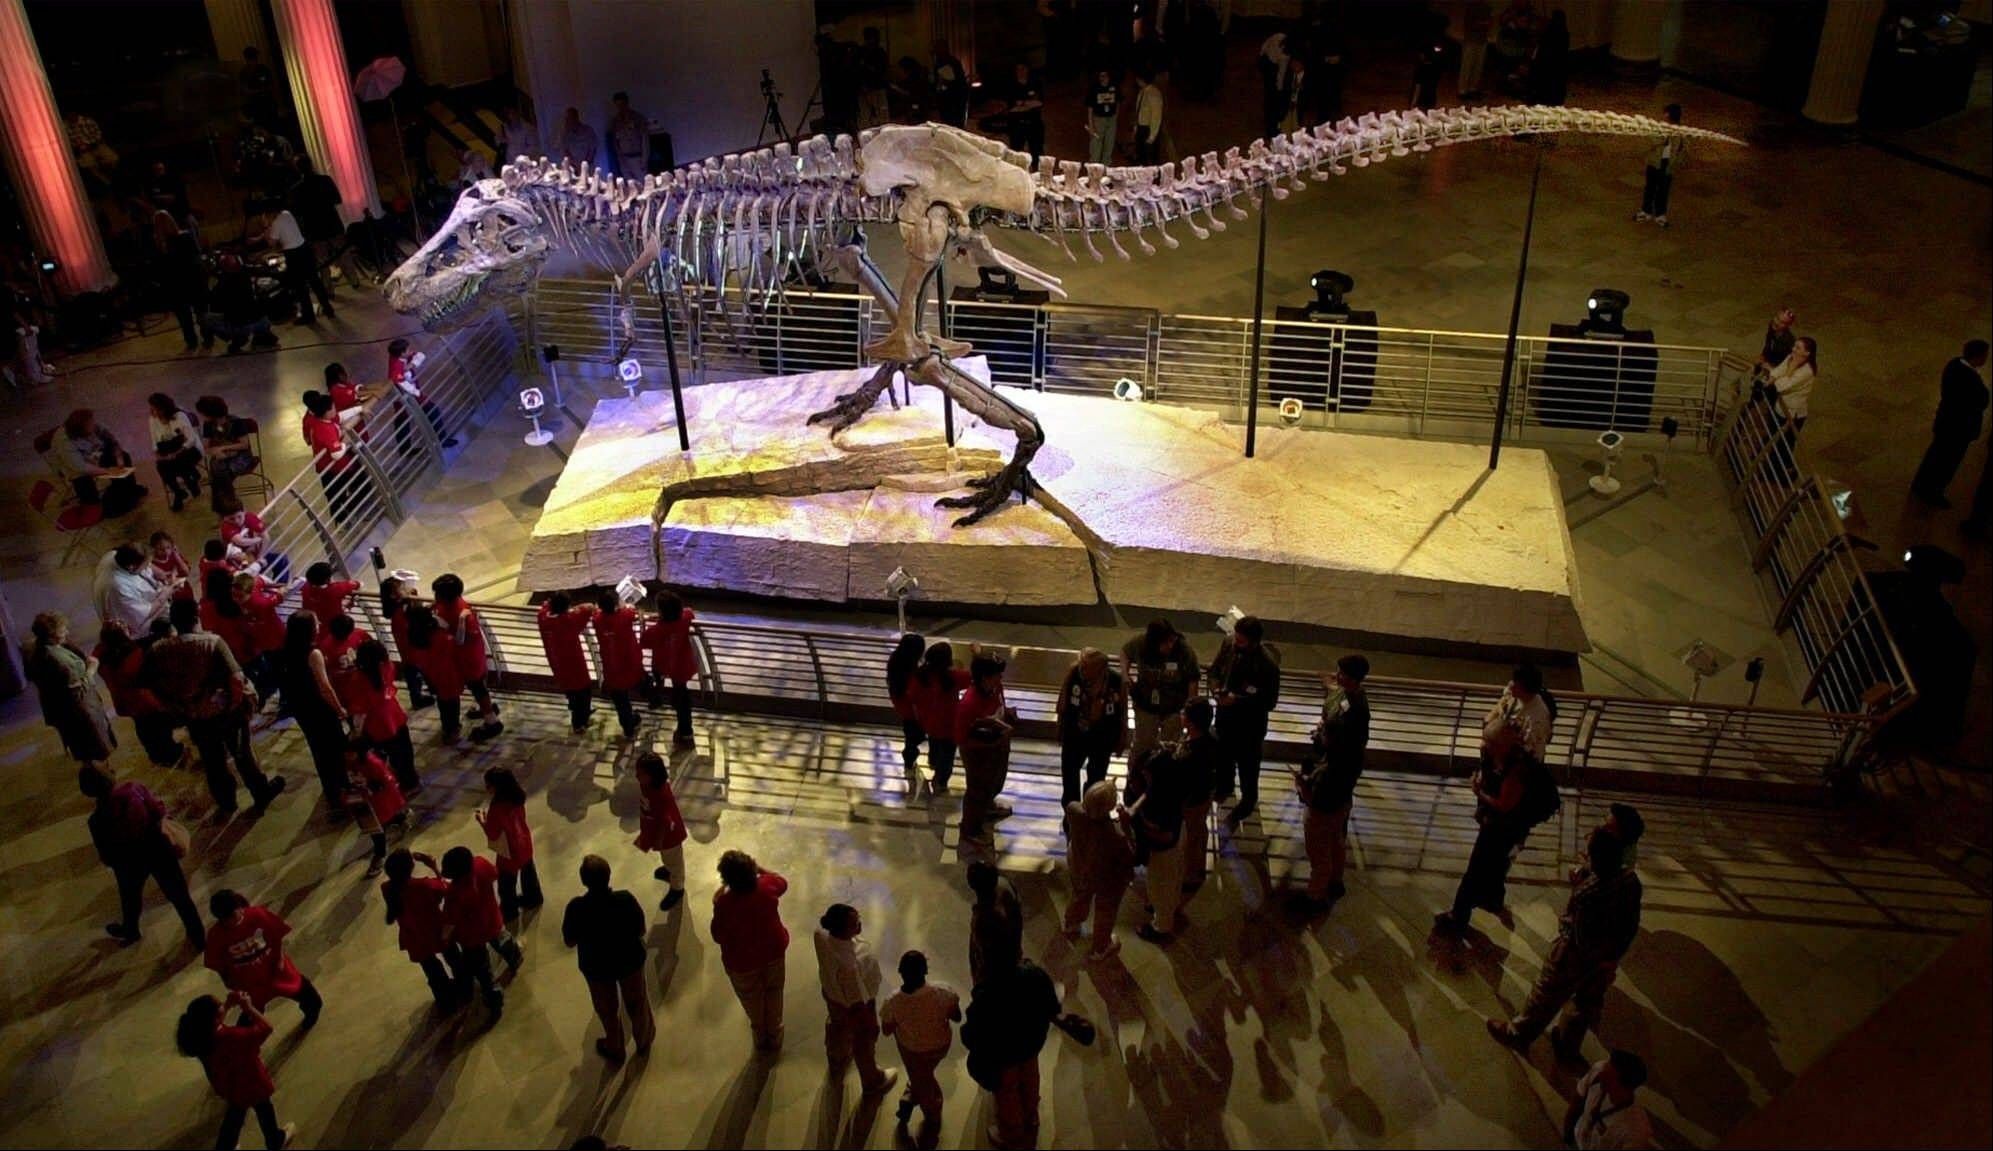 This May 17, 2000, photo shows Sue, the largest and most complete Tyrannosaurus rex skeleton ever found, on display at the Field Museum of Natural History in Chicago. The museum has announced plans to cut staff, overhaul operations and limit the scope of its research because of a high debt load and recession.